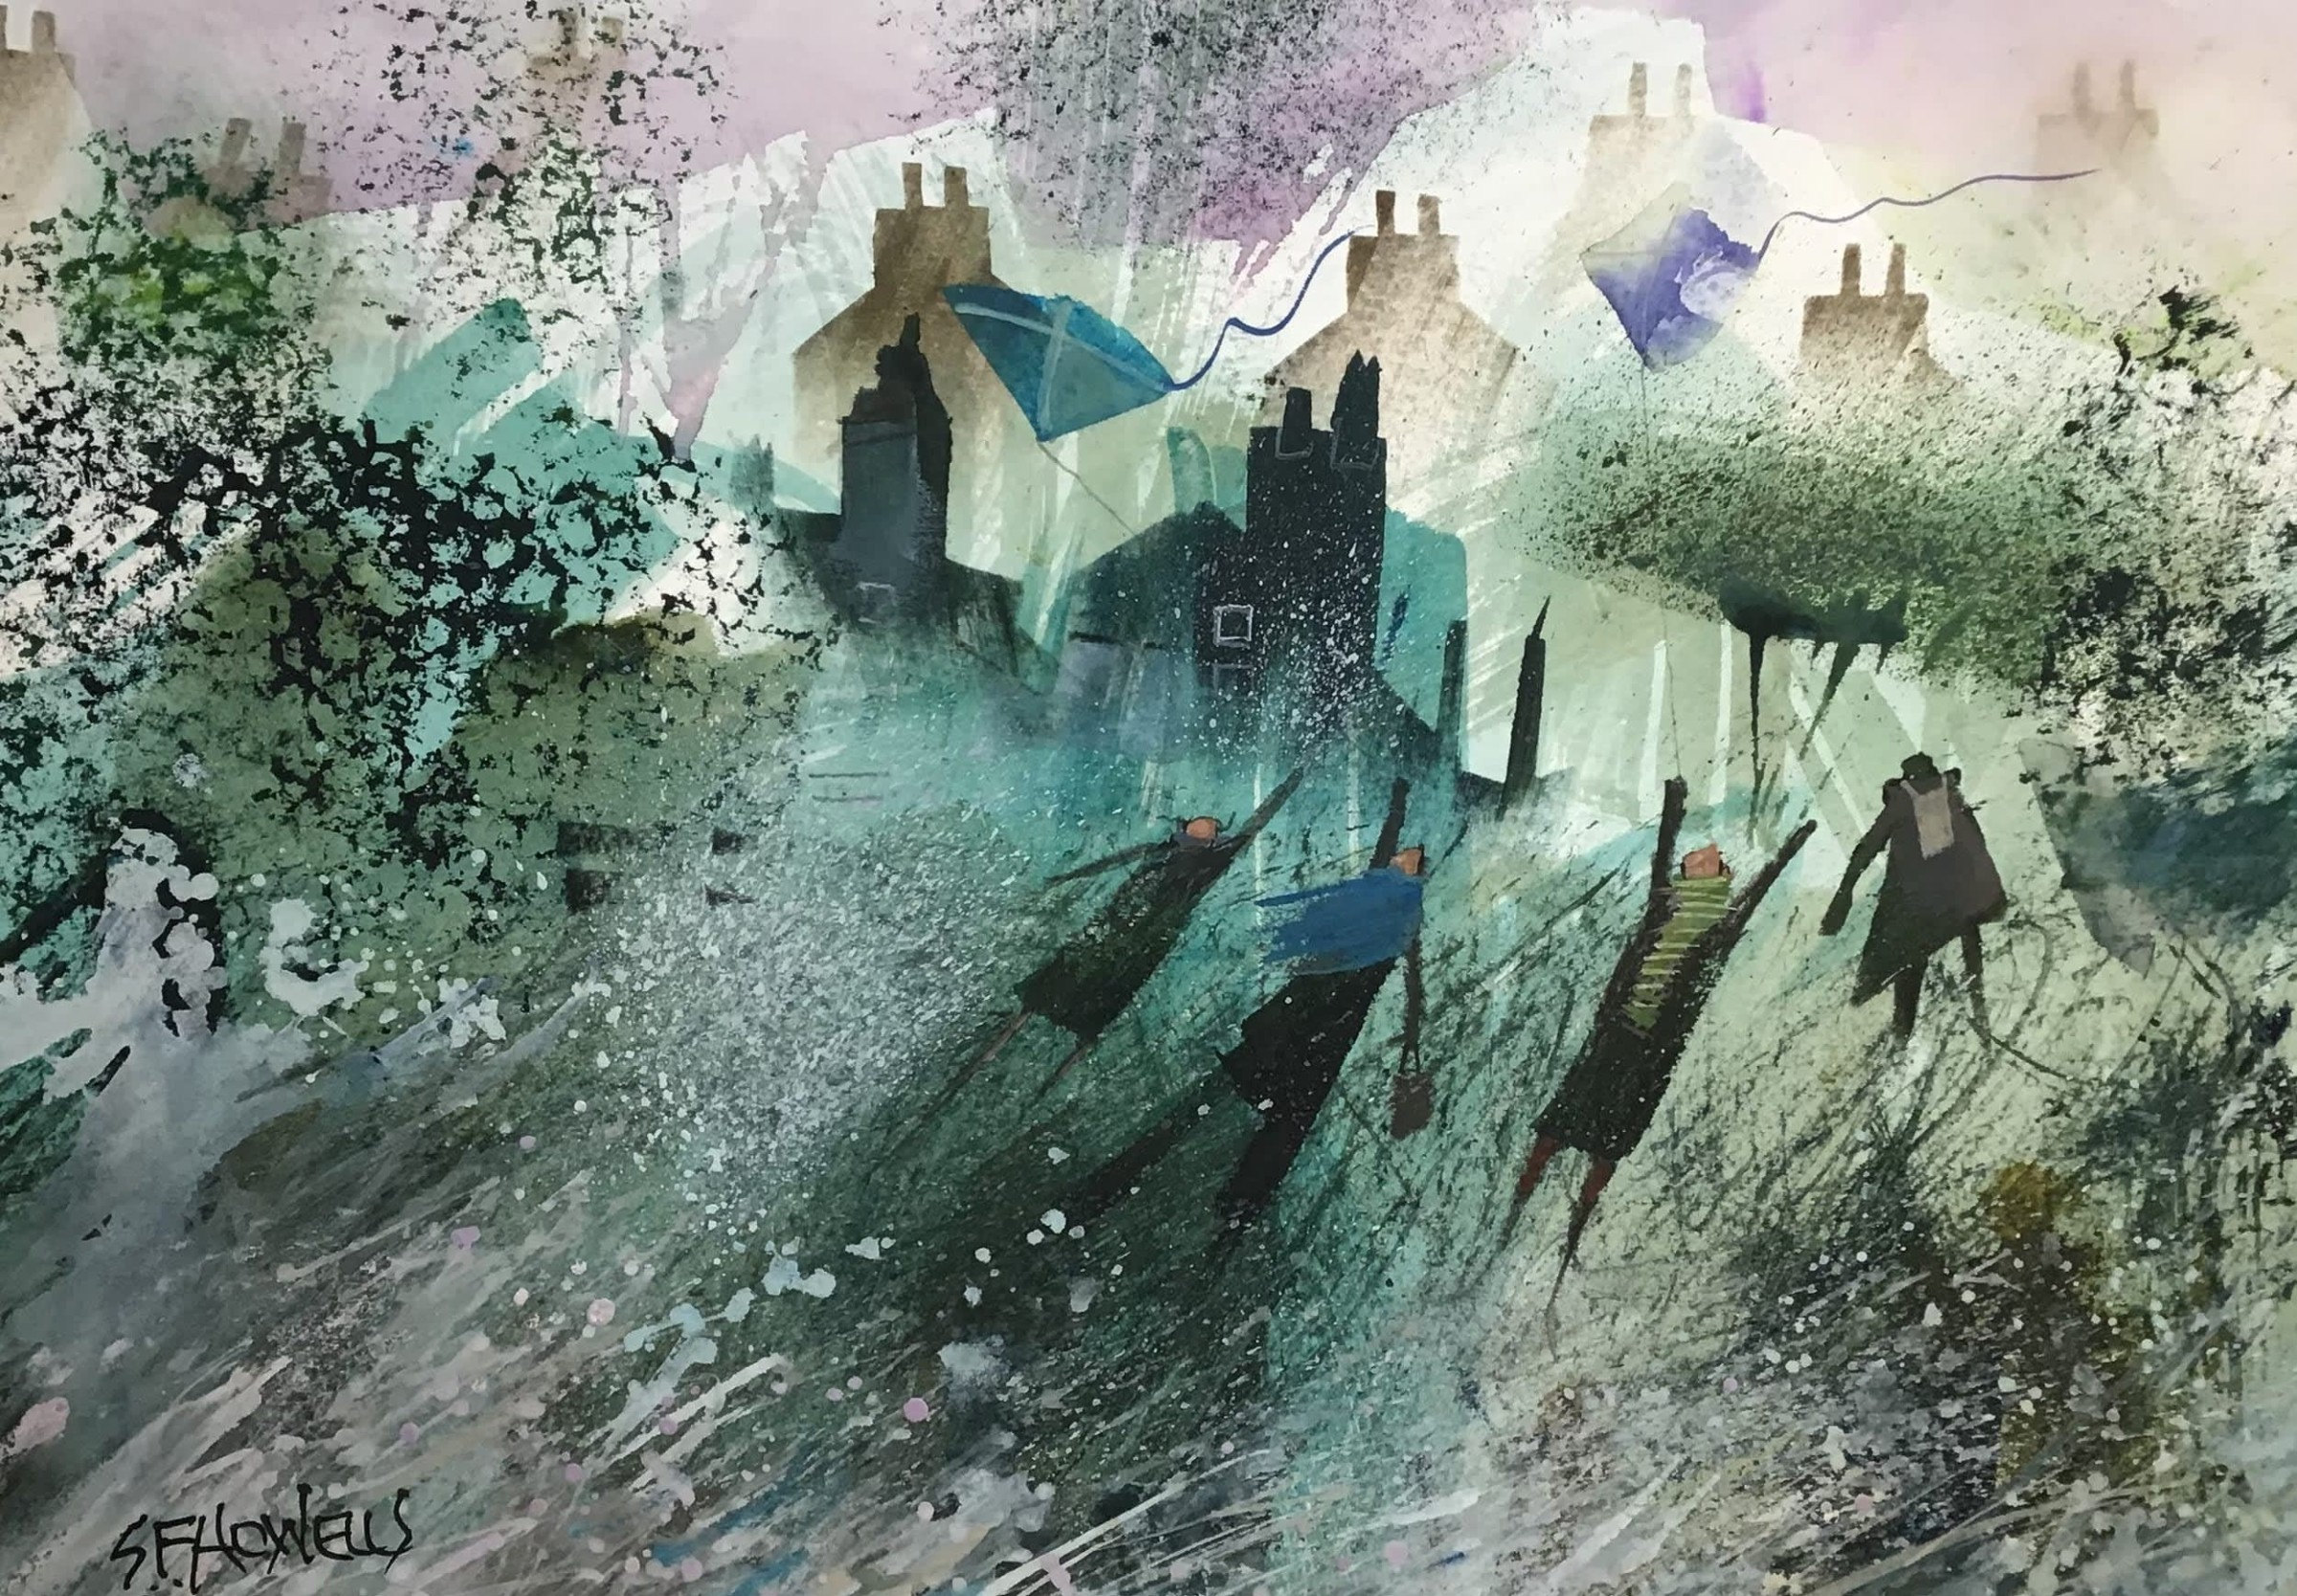 """<span class=""""link fancybox-details-link""""><a href=""""/artists/136-sue-howells/works/12068-sue-howells-they-re-flying-their-kites/"""">View Detail Page</a></span><div class=""""artist""""><span class=""""artist""""><strong>Sue Howells</strong></span></div><div class=""""title""""><em>They're Flying Their Kites</em></div><div class=""""medium"""">watercolour</div><div class=""""dimensions"""">Frame: 50 x 60 cm<br /> Artwork: 26 x 35 cm</div><div class=""""price"""">£400.00</div>"""